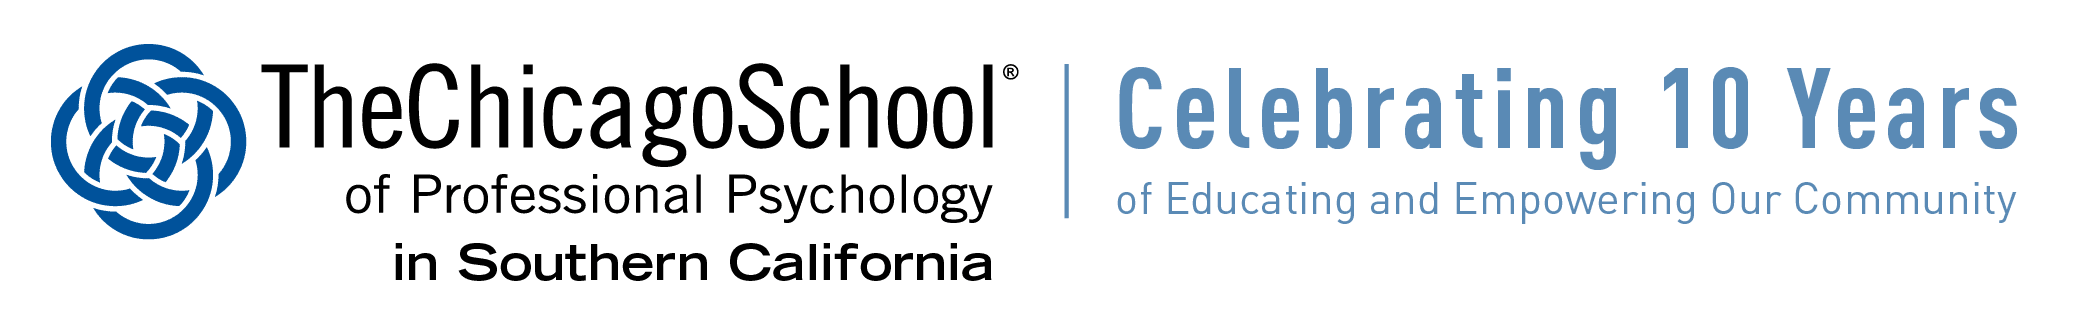 The Chicago School of Professional Psychology in Southern California | Celebrating 10 years of educating and empowering our community